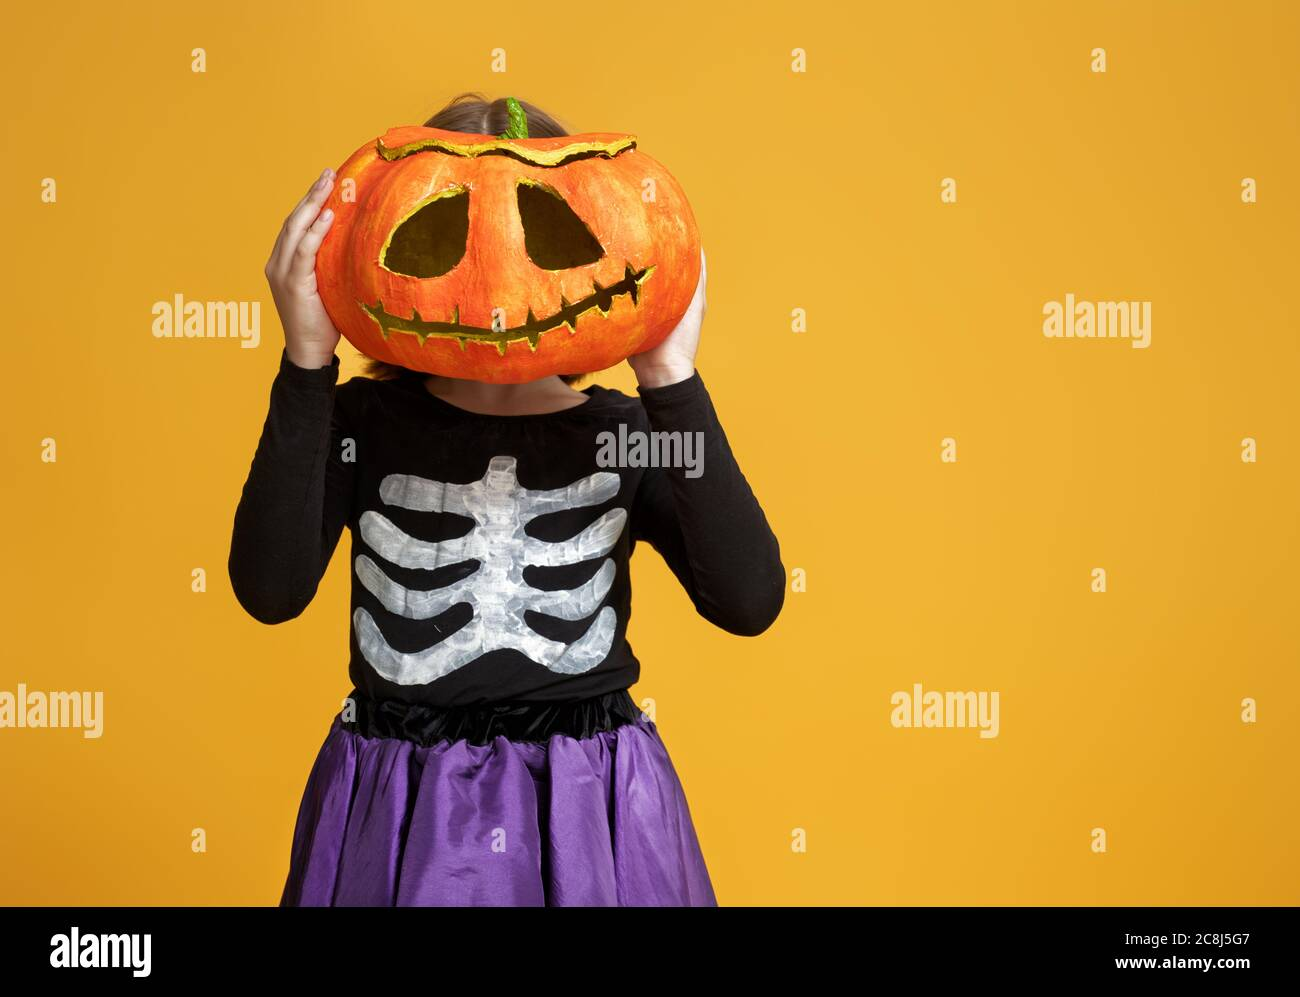 Happy Halloween Cute Little Girl In Skeleton Costume With Pumpkin On Yellow Background Stock Photo Alamy